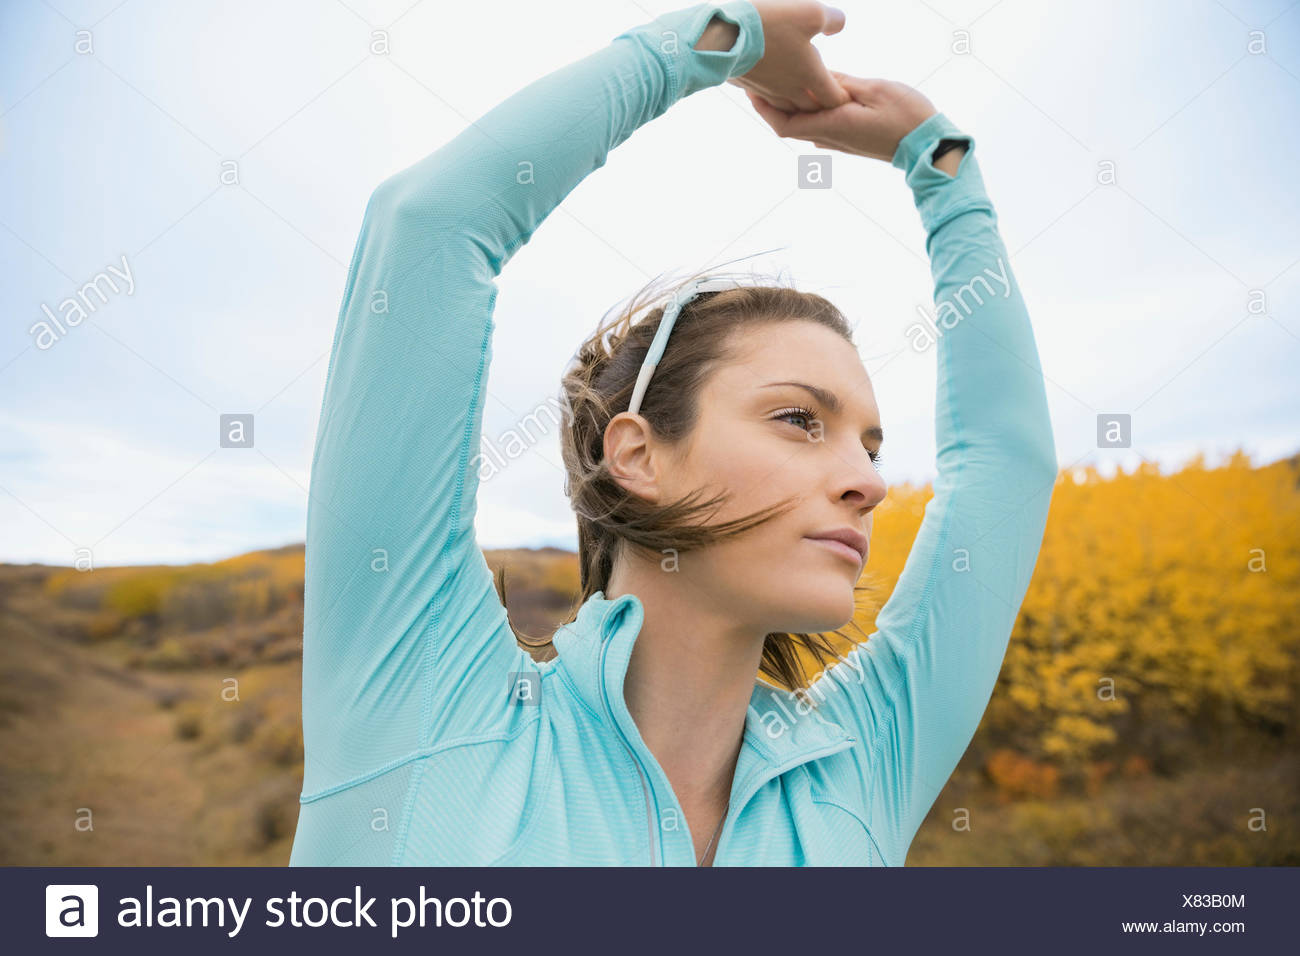 Runner stretching arms Photo Stock